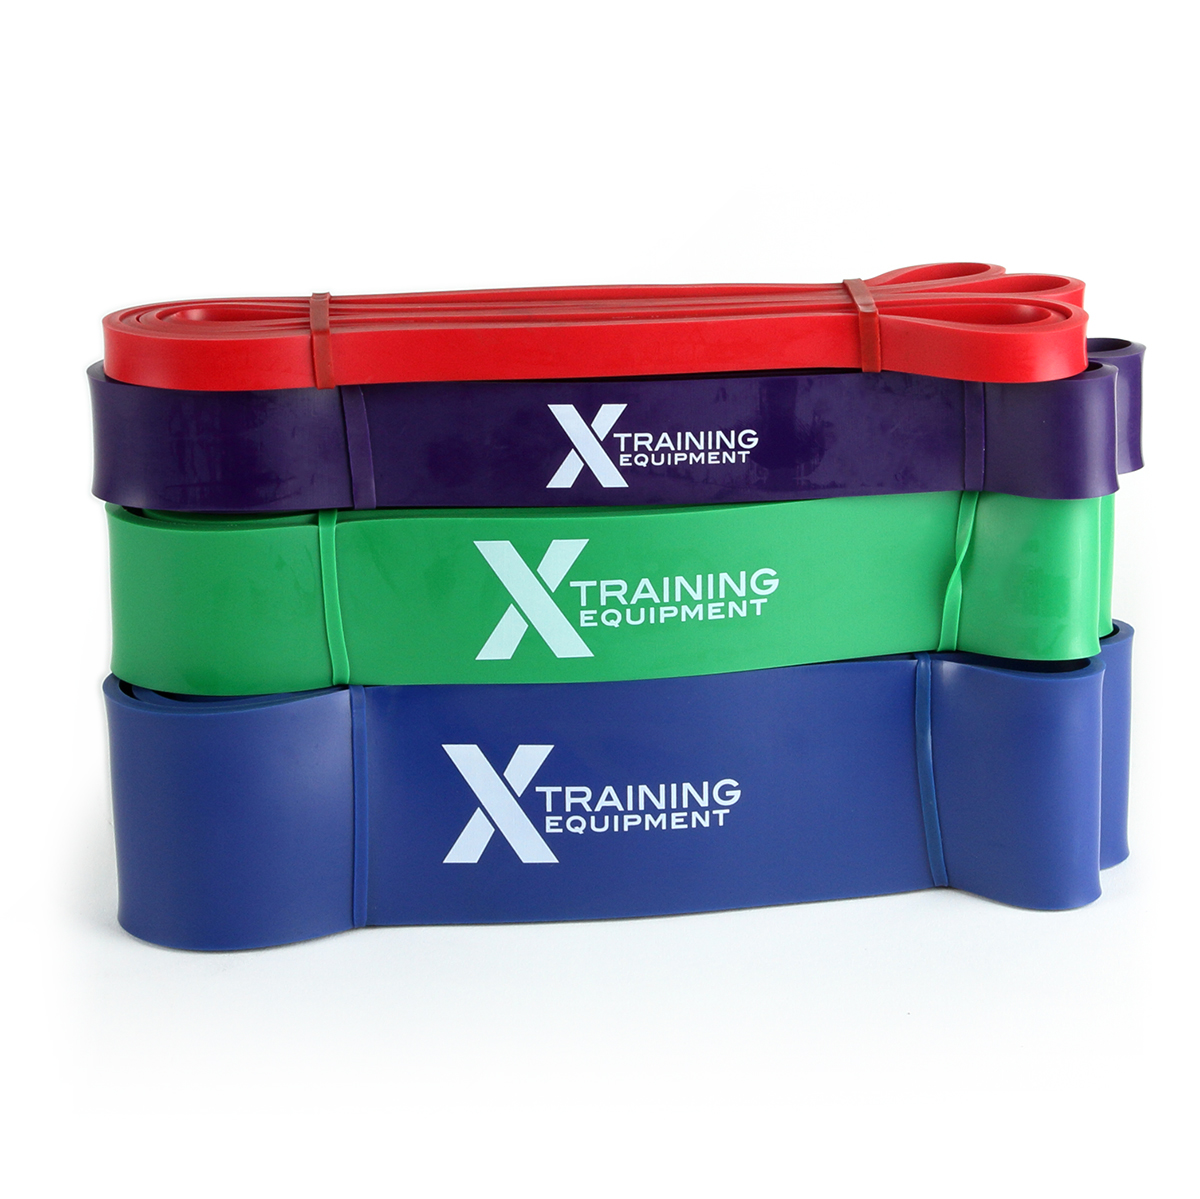 Strength Band 4-Pack - Includes Red, Purple, Green, & Blue Bands - Pre-Order Now - ETA 12/19